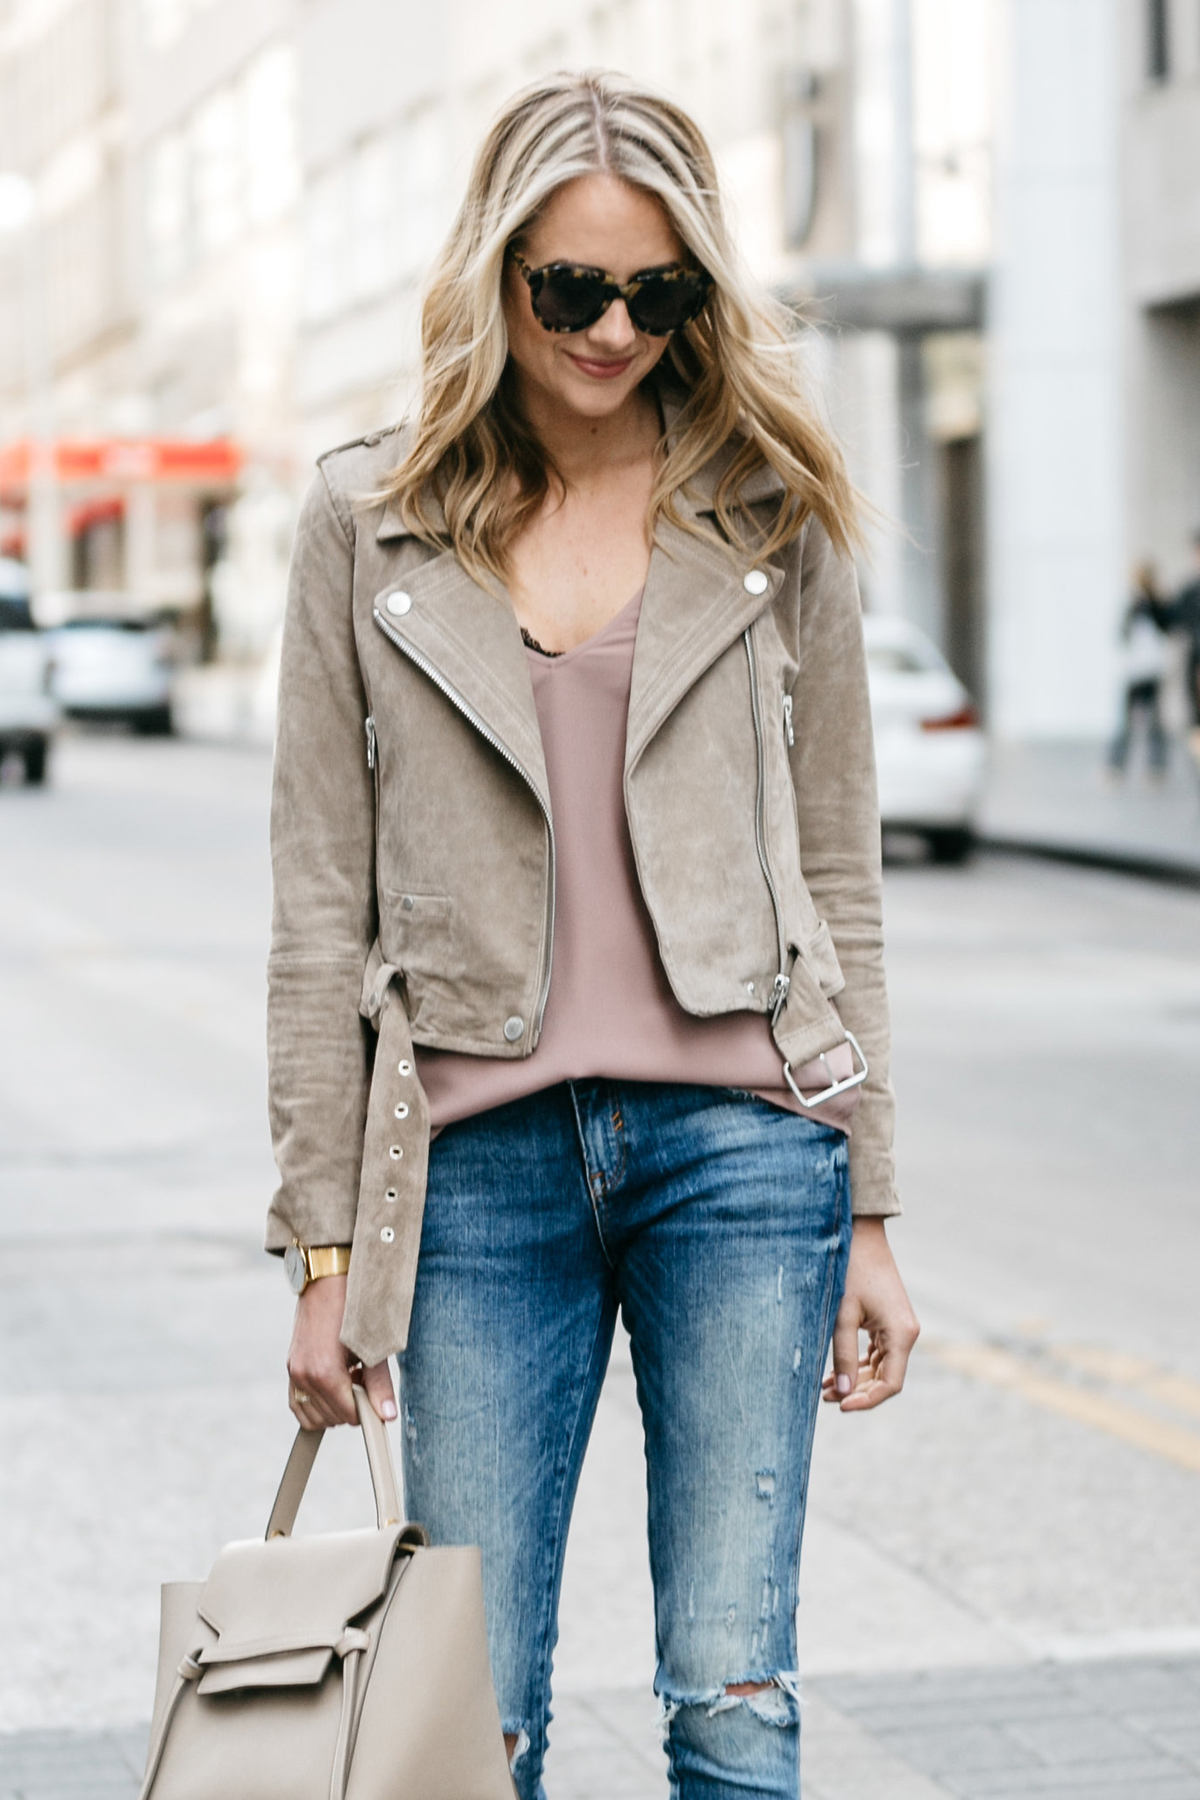 Fashion Jackson, Street Style, Blanknyc Tan Suede Moto Jacket, Blush Cami, Denim Ripped Skinny Jeans, Black Lace Bralette